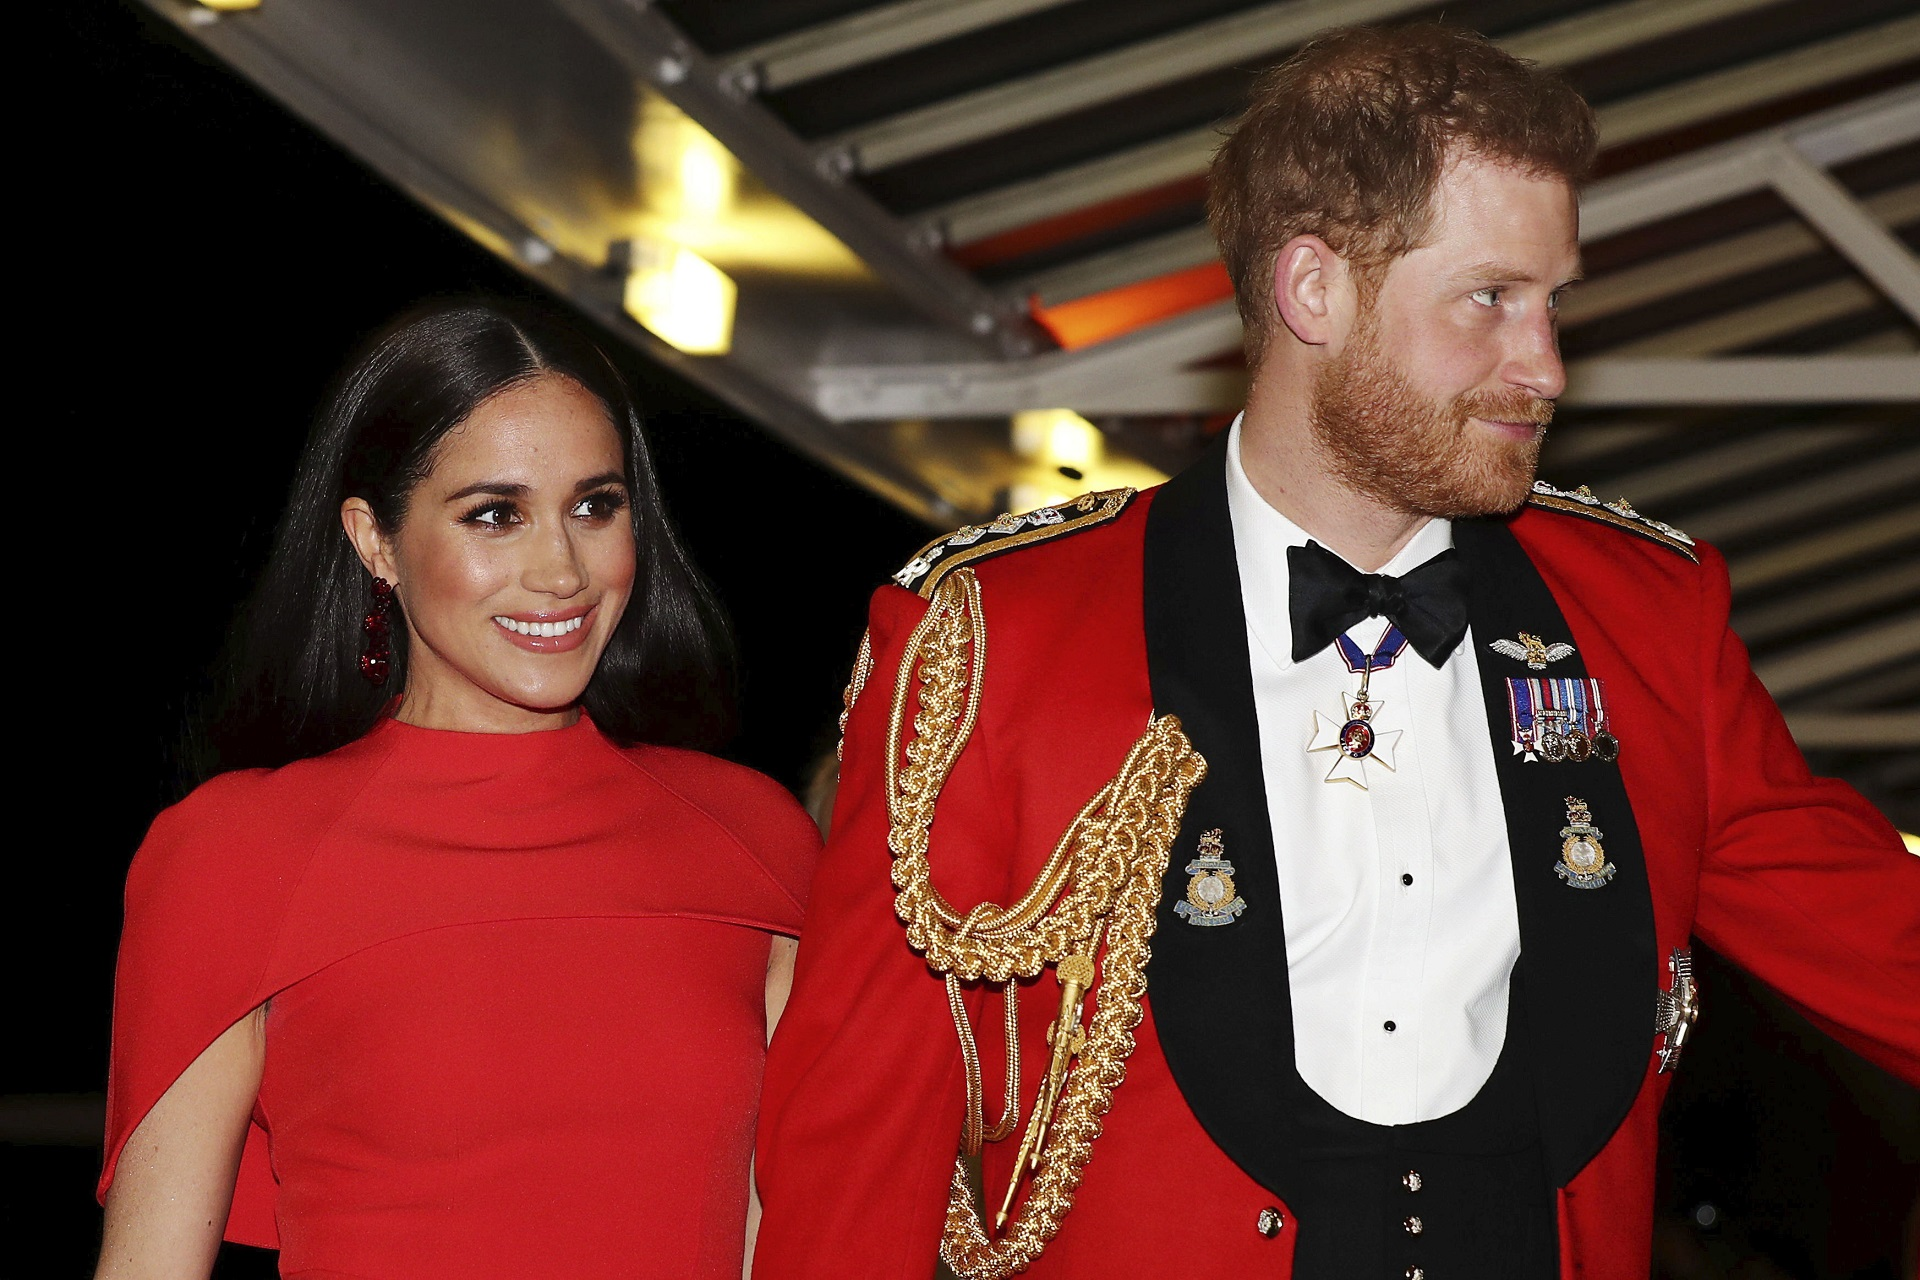 It's final: Harry and Meghan won't return as working royals